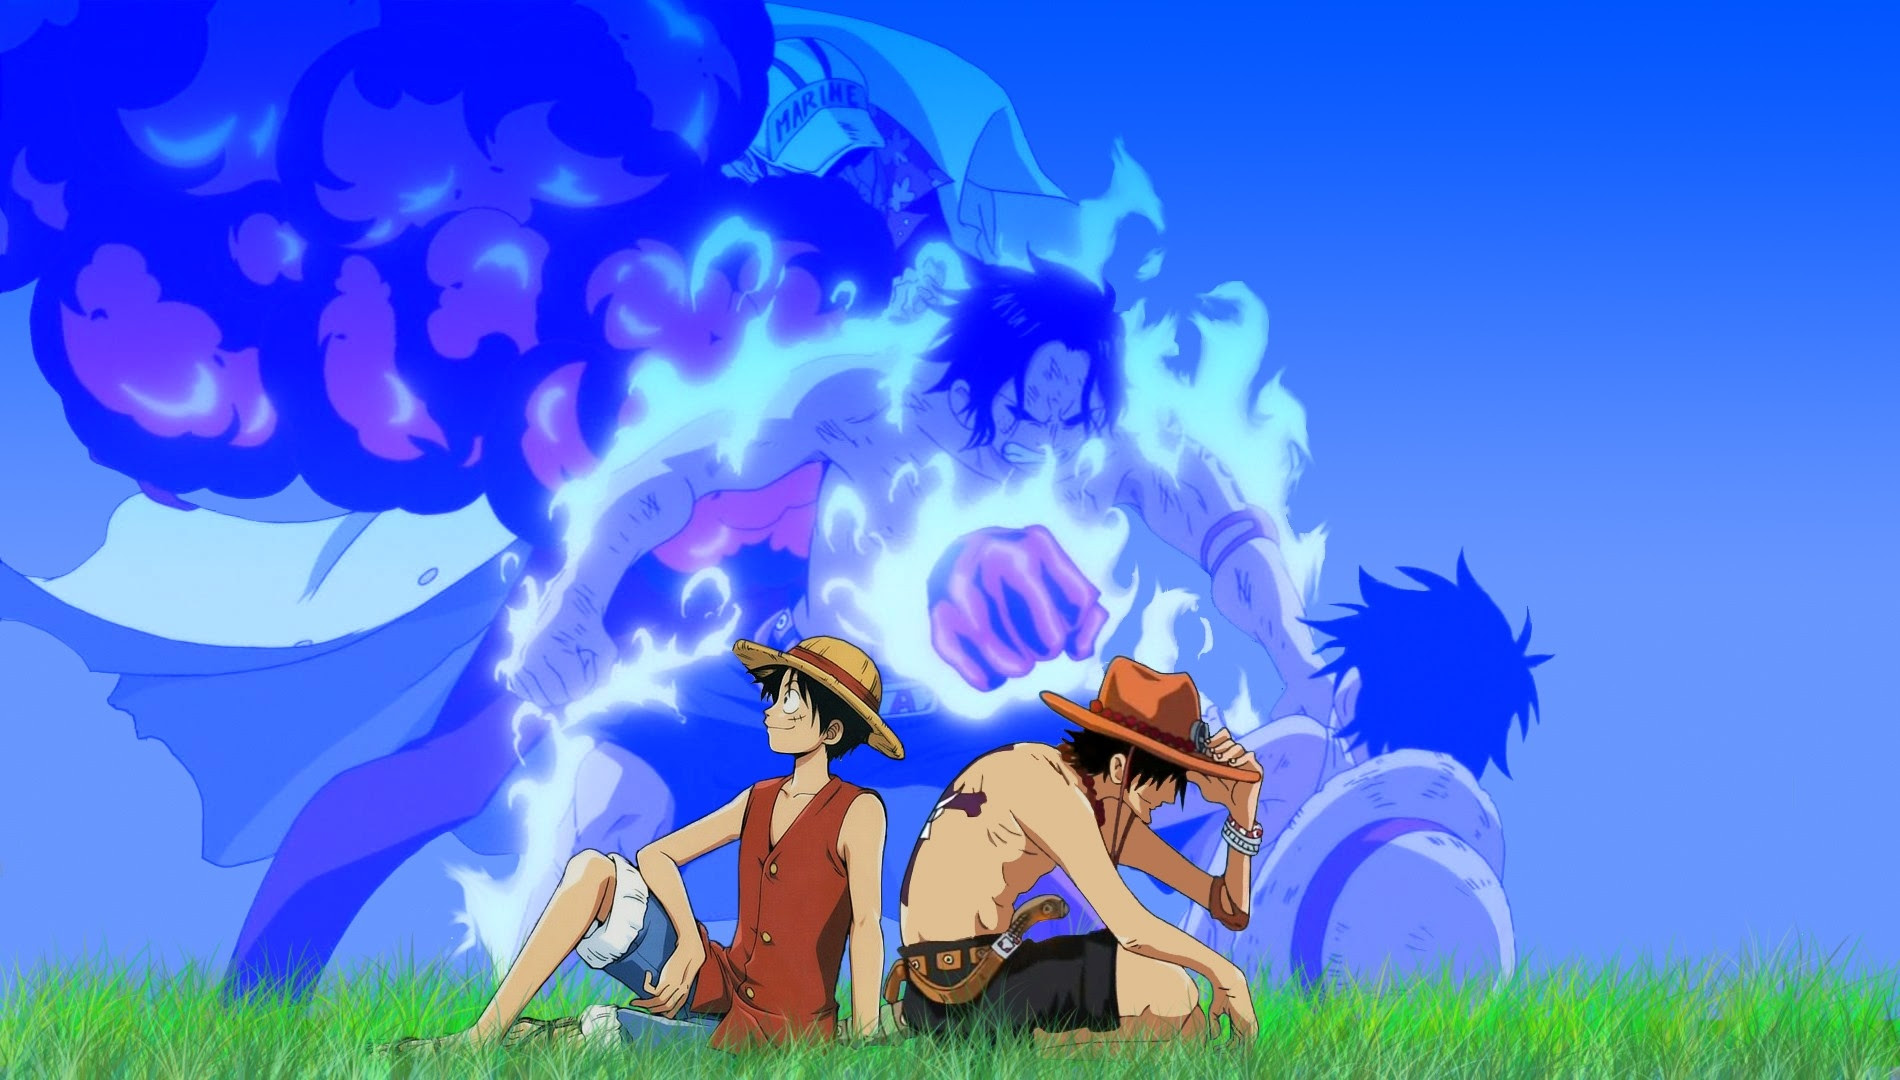 4000 Wallpaper Anime Hd Luffy  Gratis